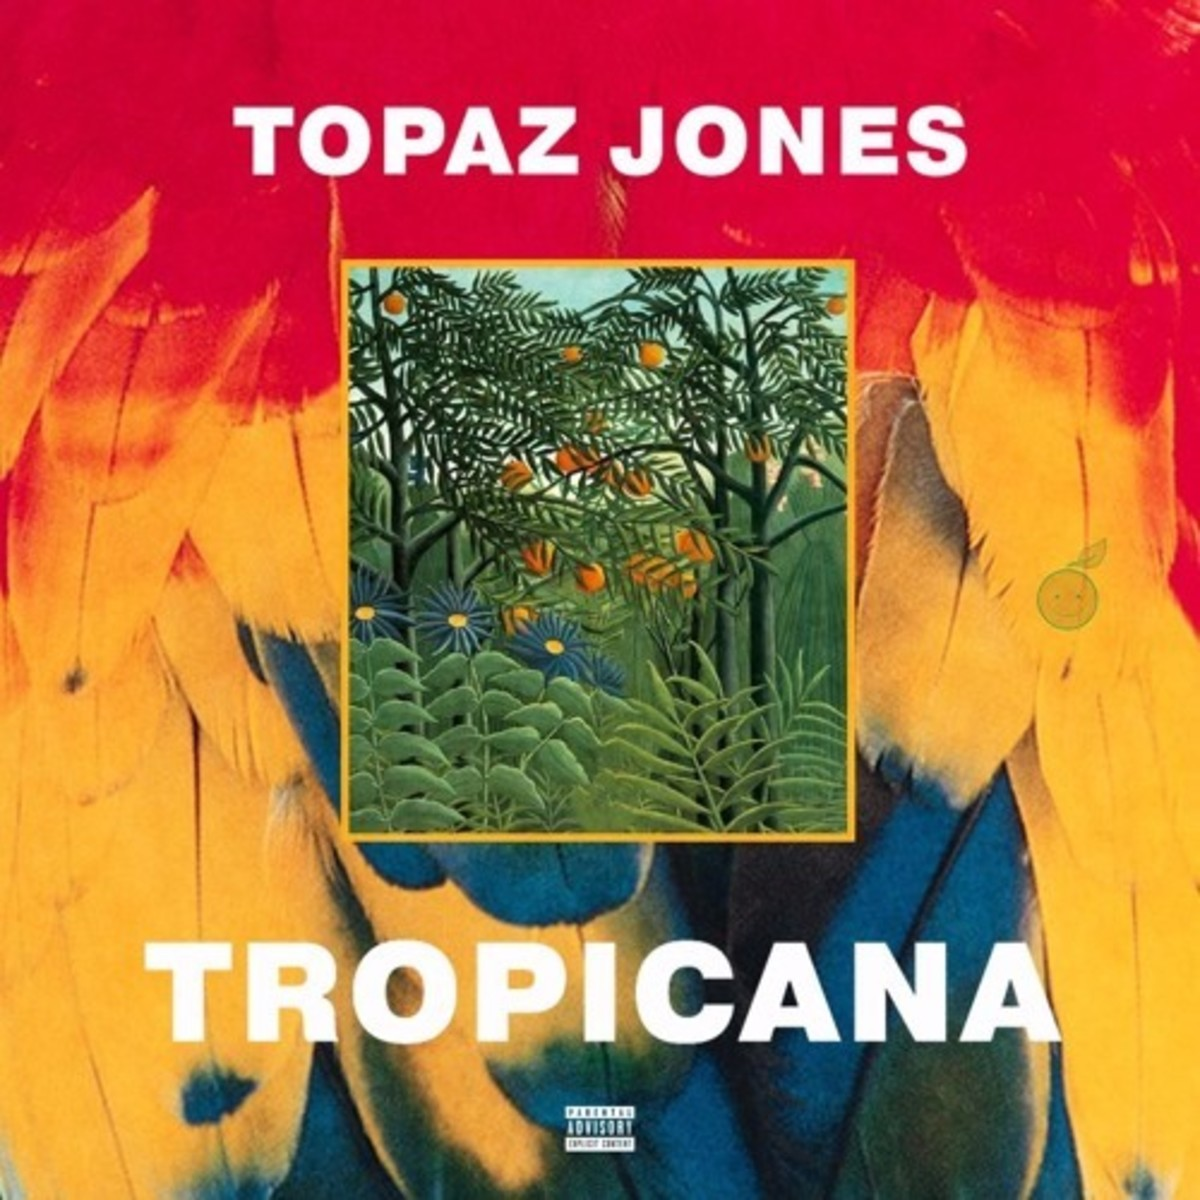 topaz-jones-tropicana.jpg